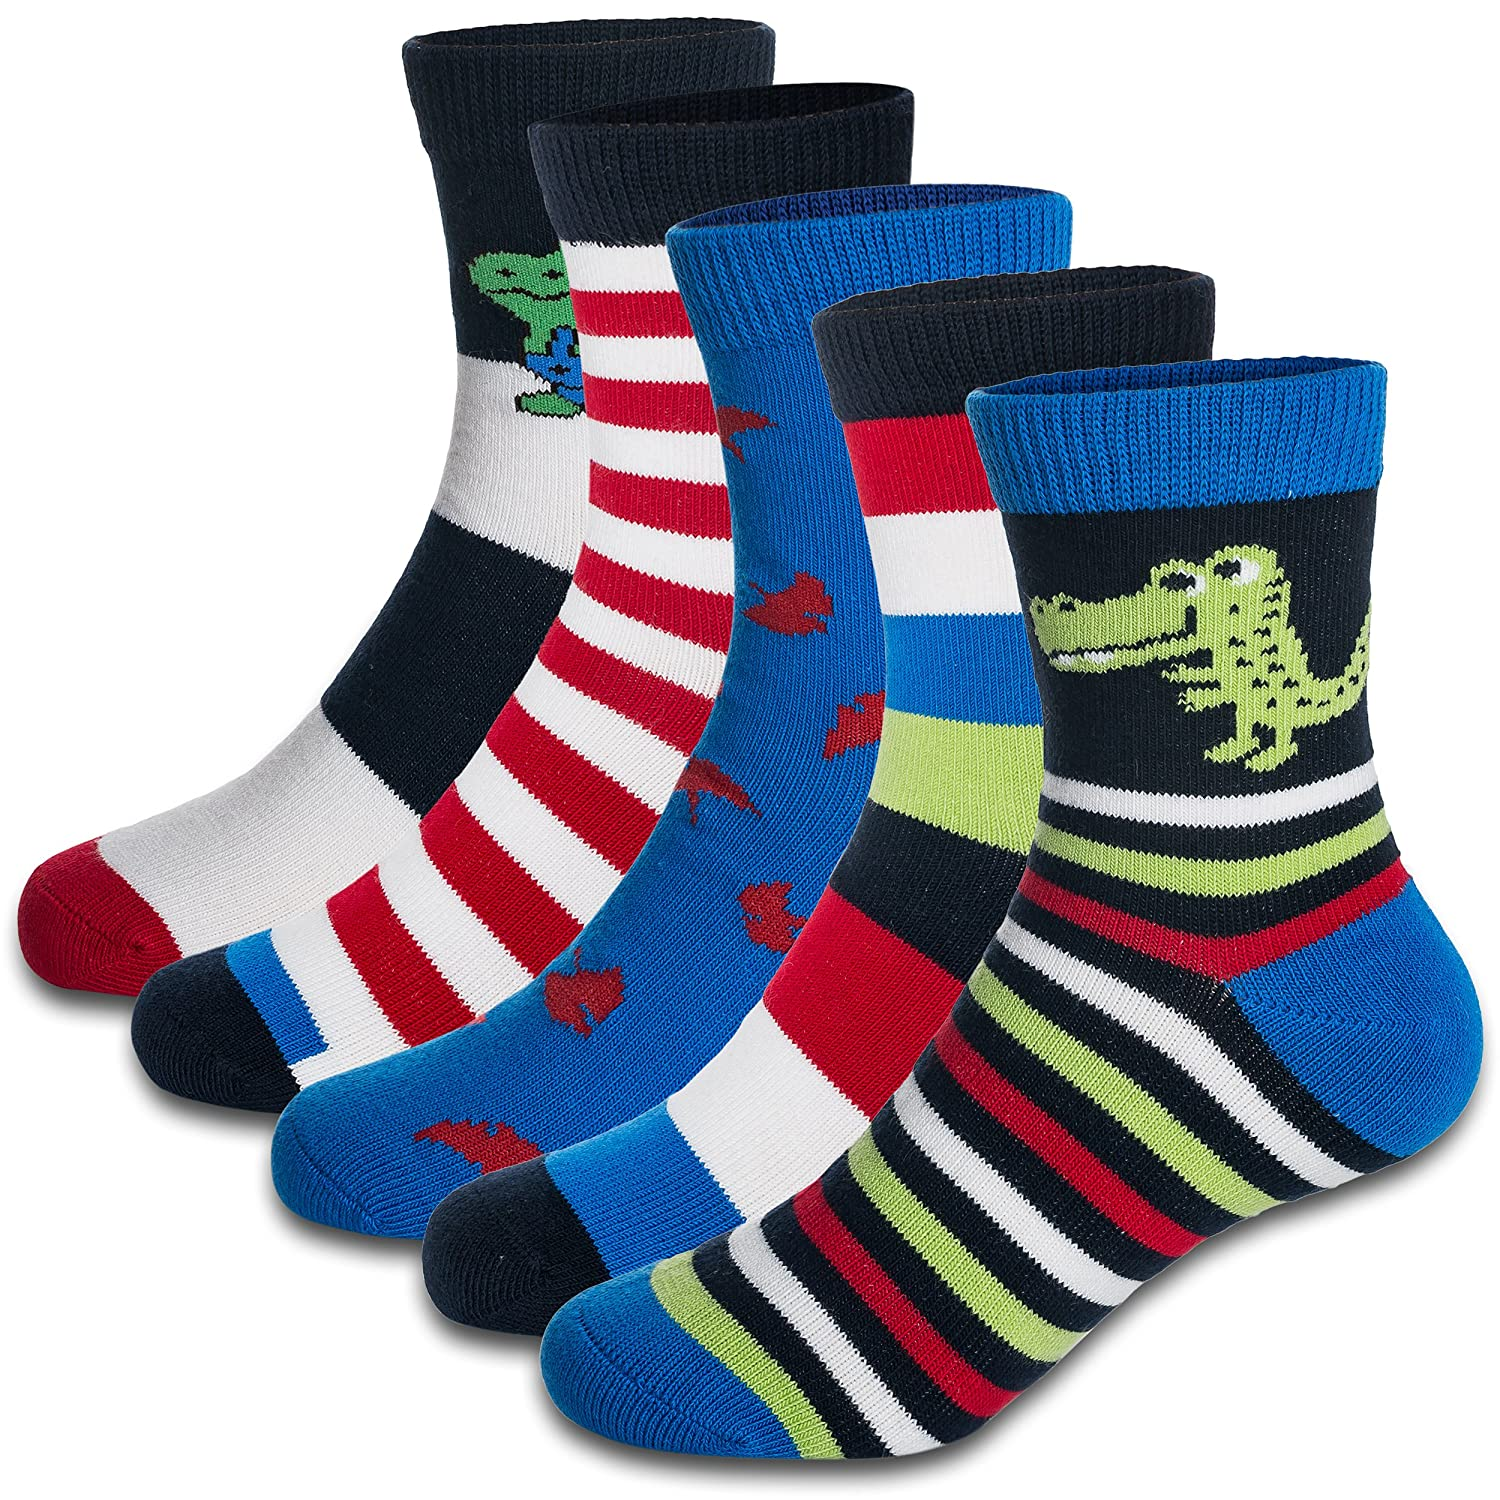 Boys\' Crew Socks Kids Toddler Little Boys Fashion Seamless Cotton Striped Athletic Socks 5 Pairs Pack